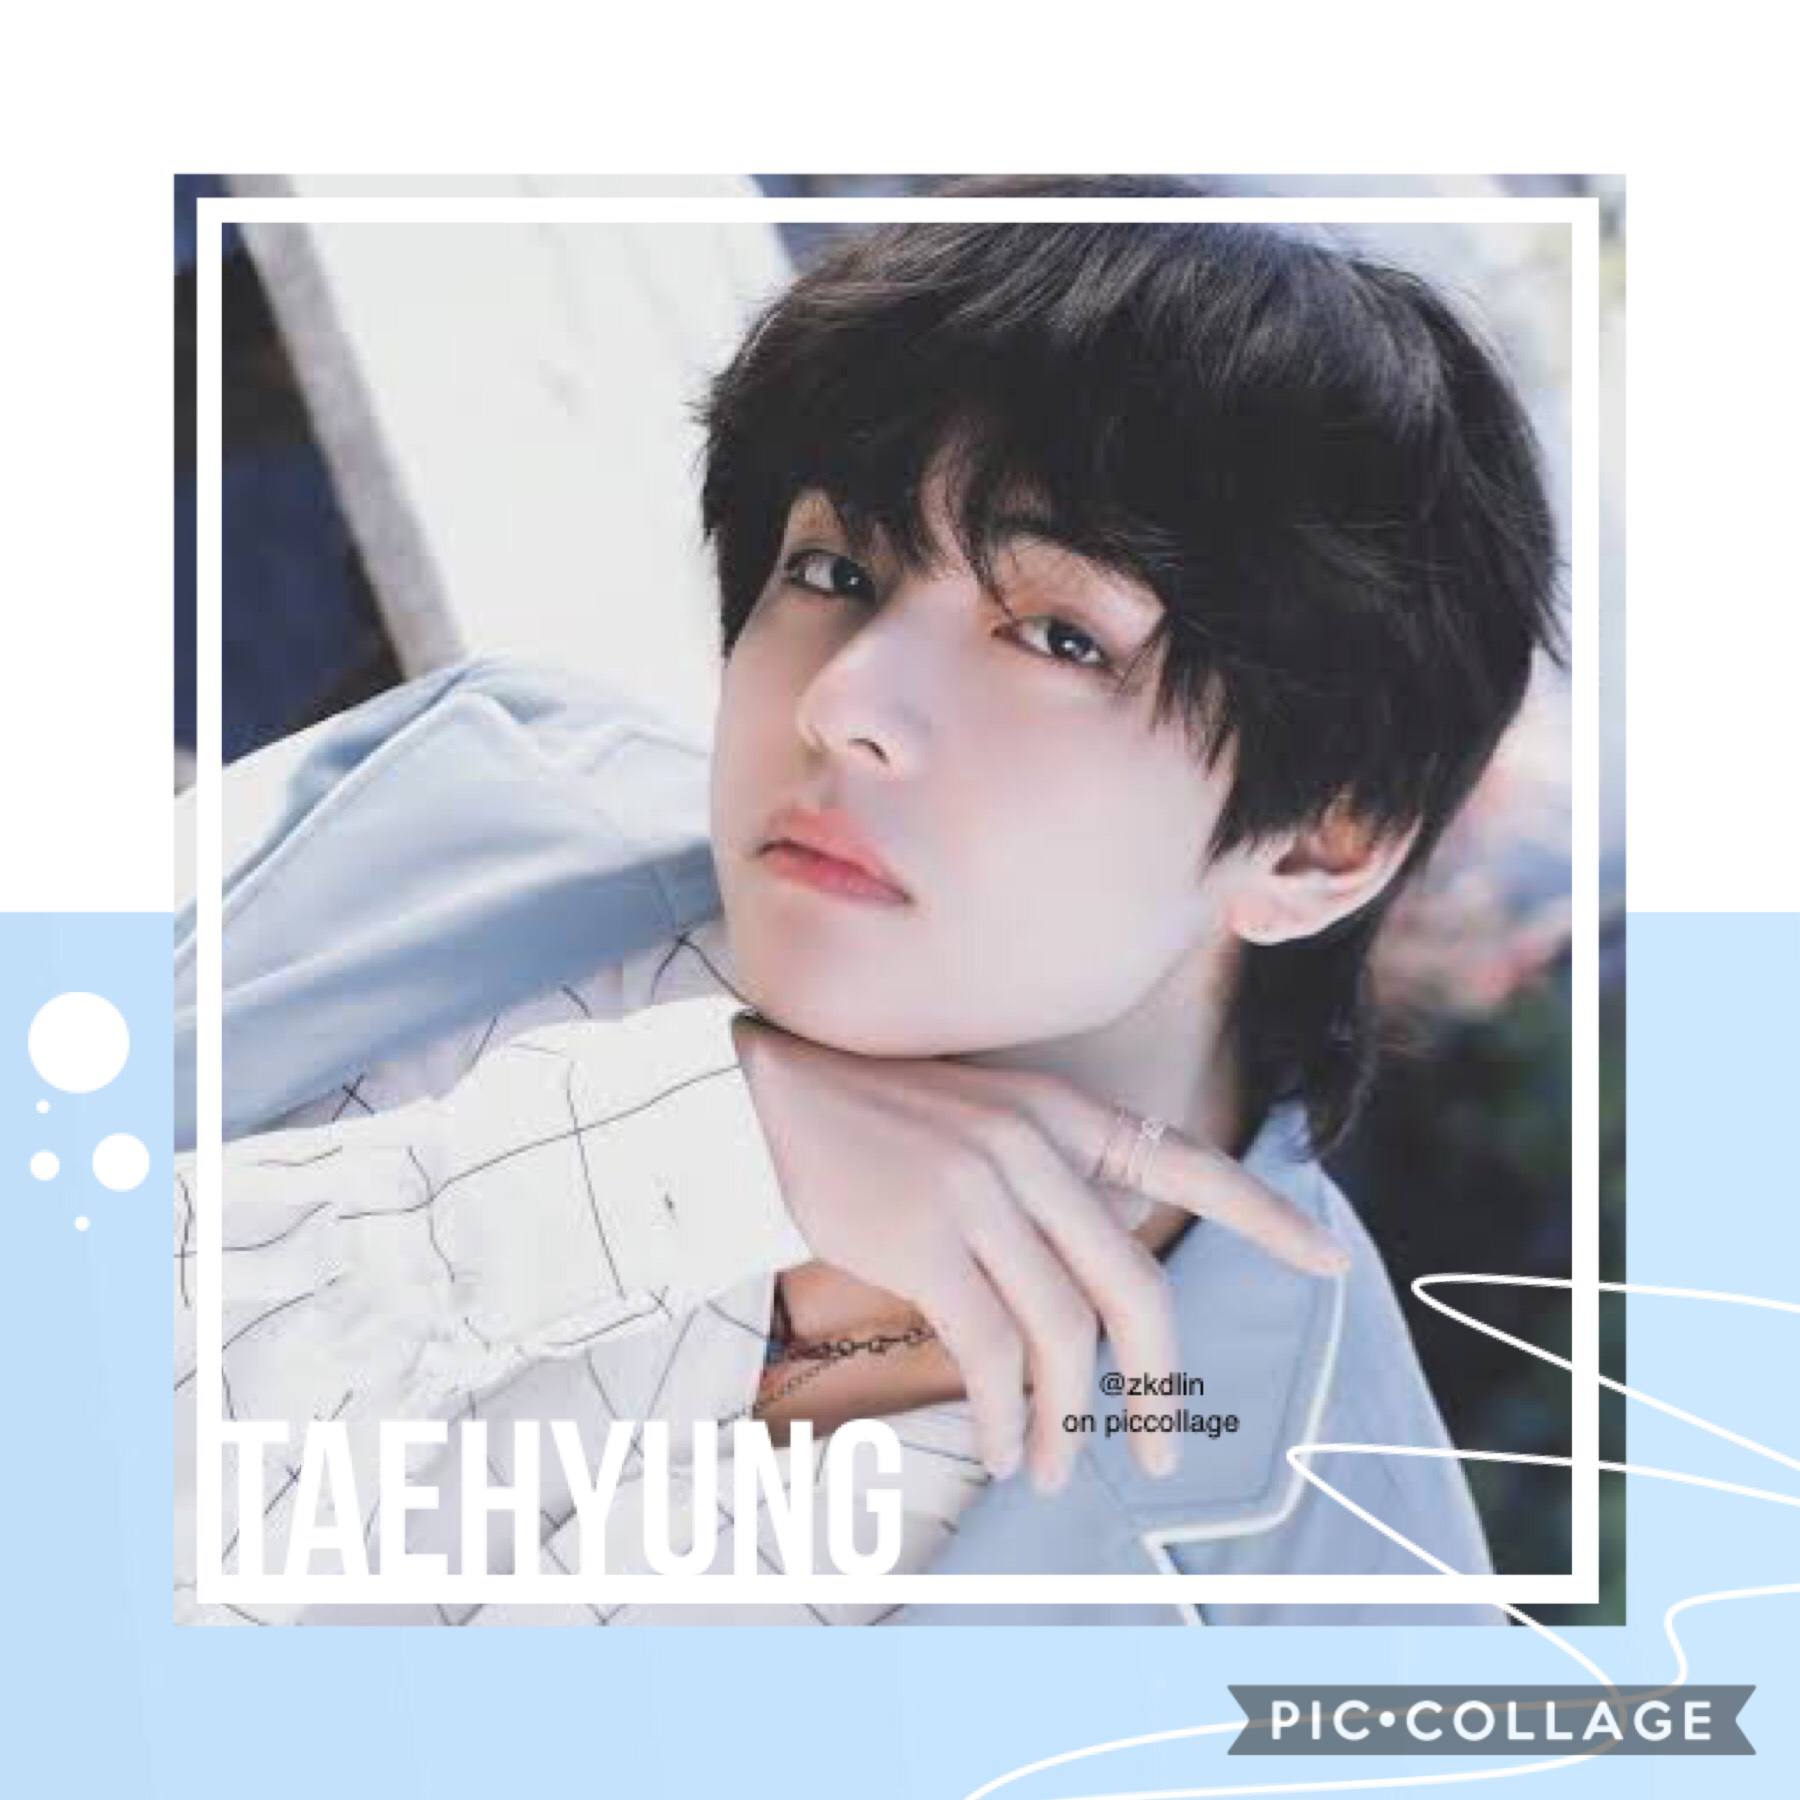 """☁️taehyung (tap) requested by @-magicshop  i have no inspo skskd and piccollage deleted all my edits- (not on my acc tho, on the """"collages"""" thing)  :(("""